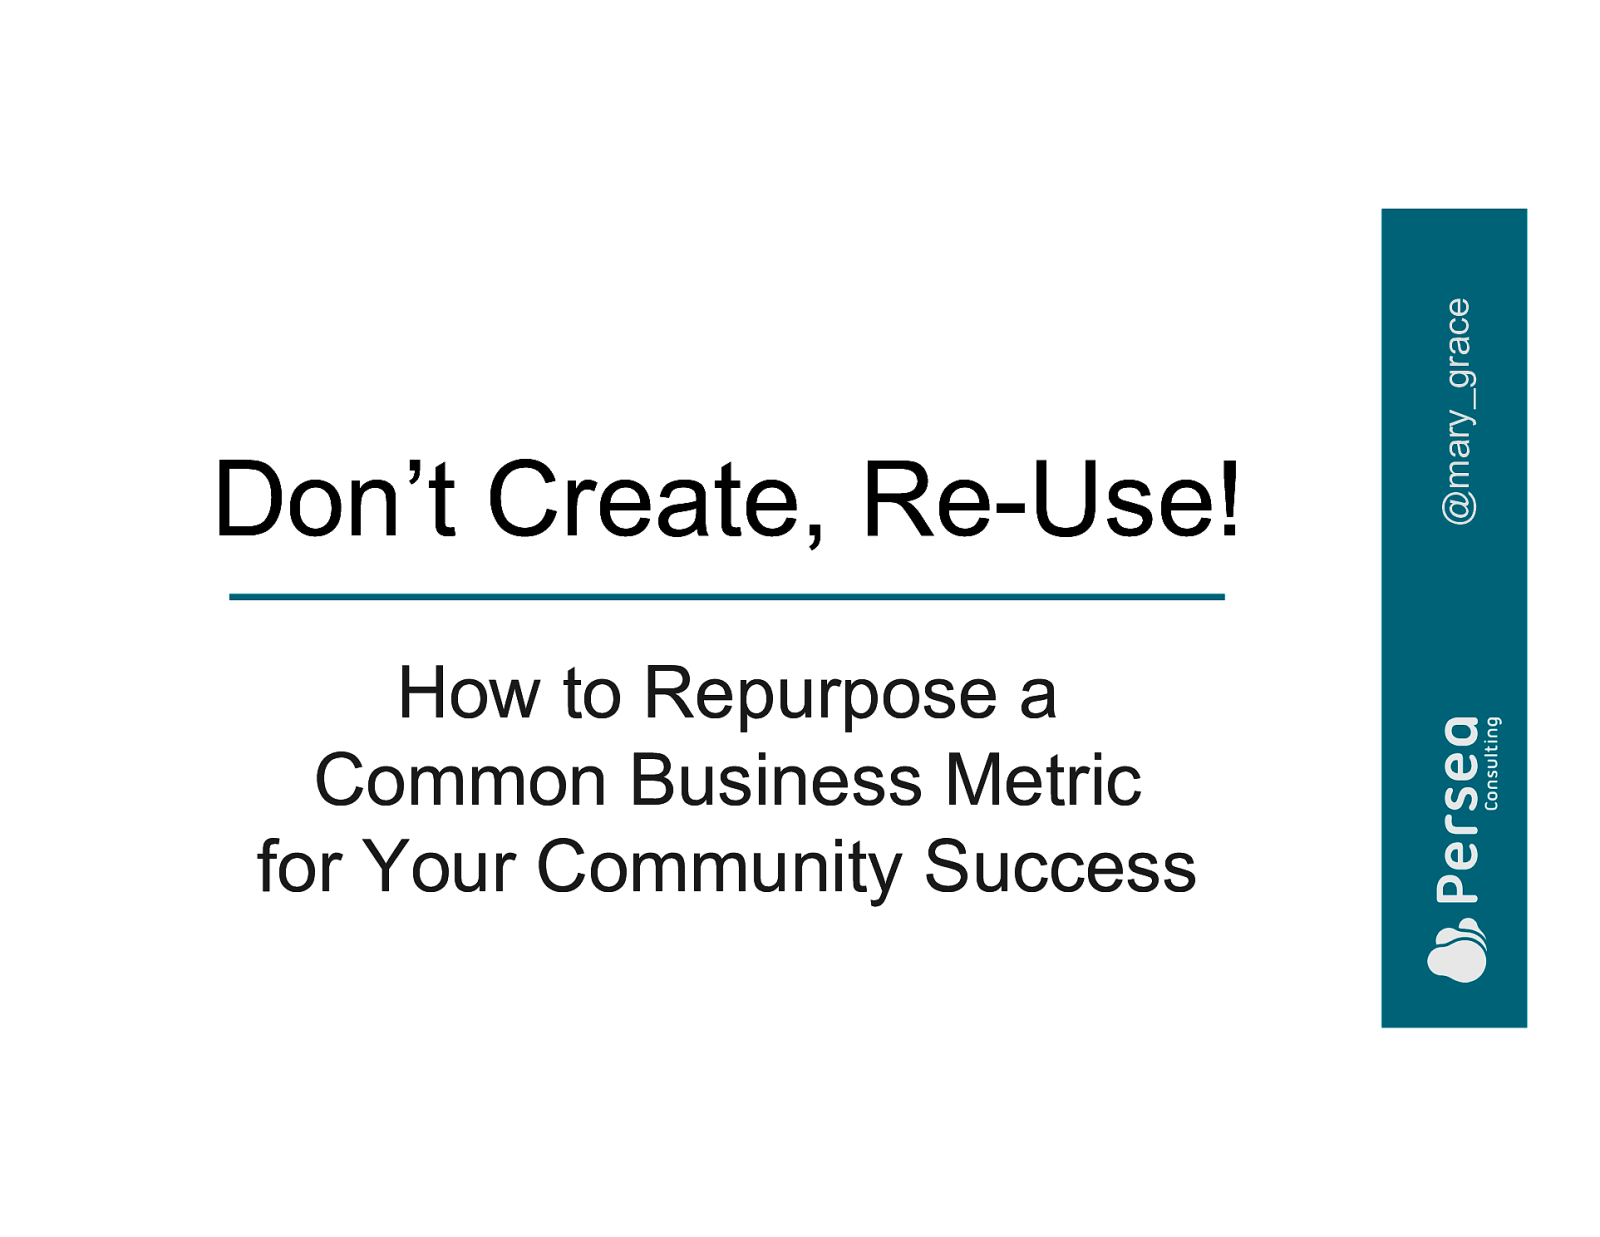 How to Repurpose a Common Business Metric for Your Community Success